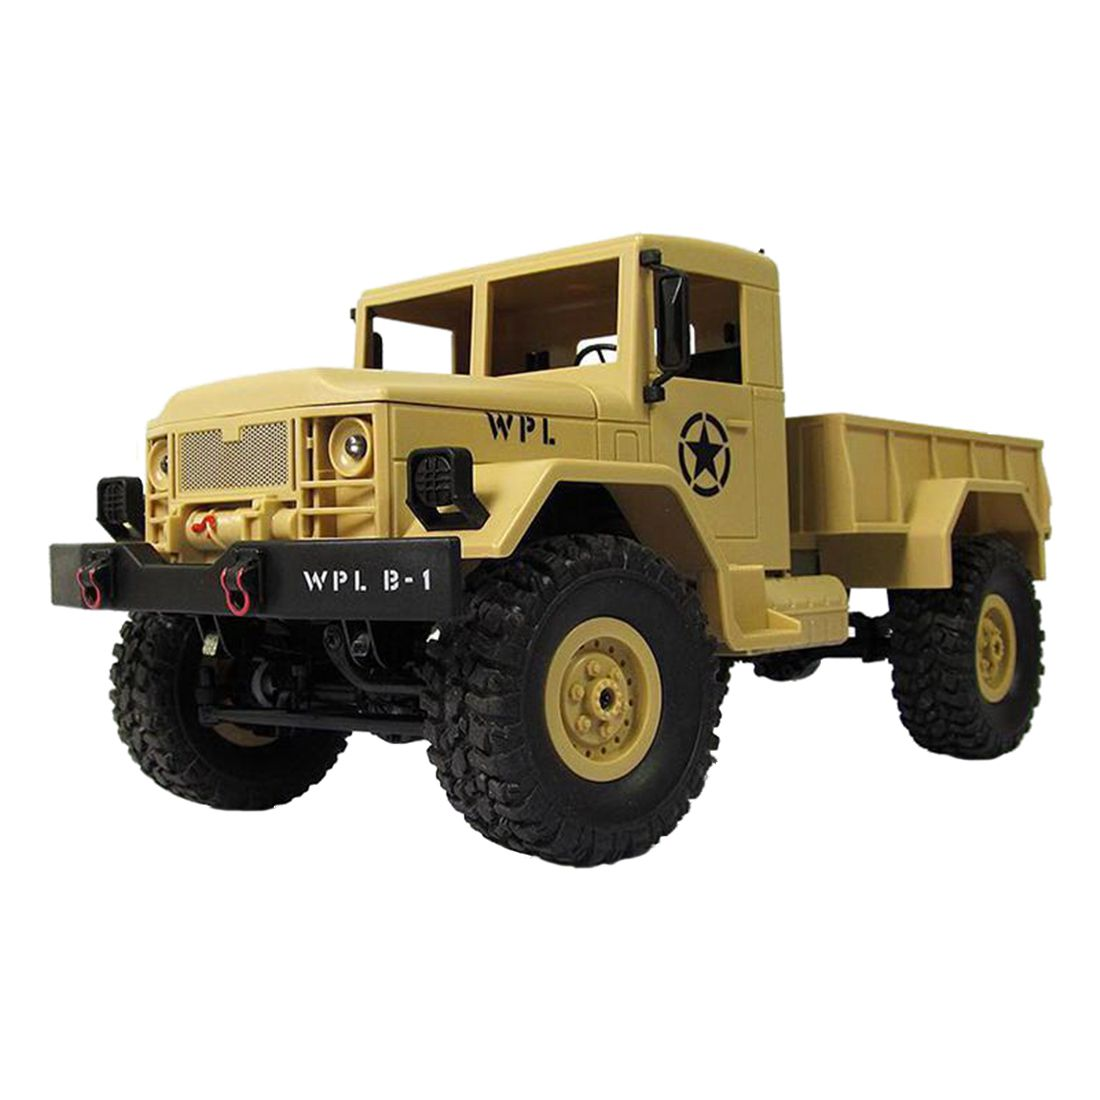 WPLB-1 1/16 2.4G 4WD RC Crawler Off Road Car With Light RTR